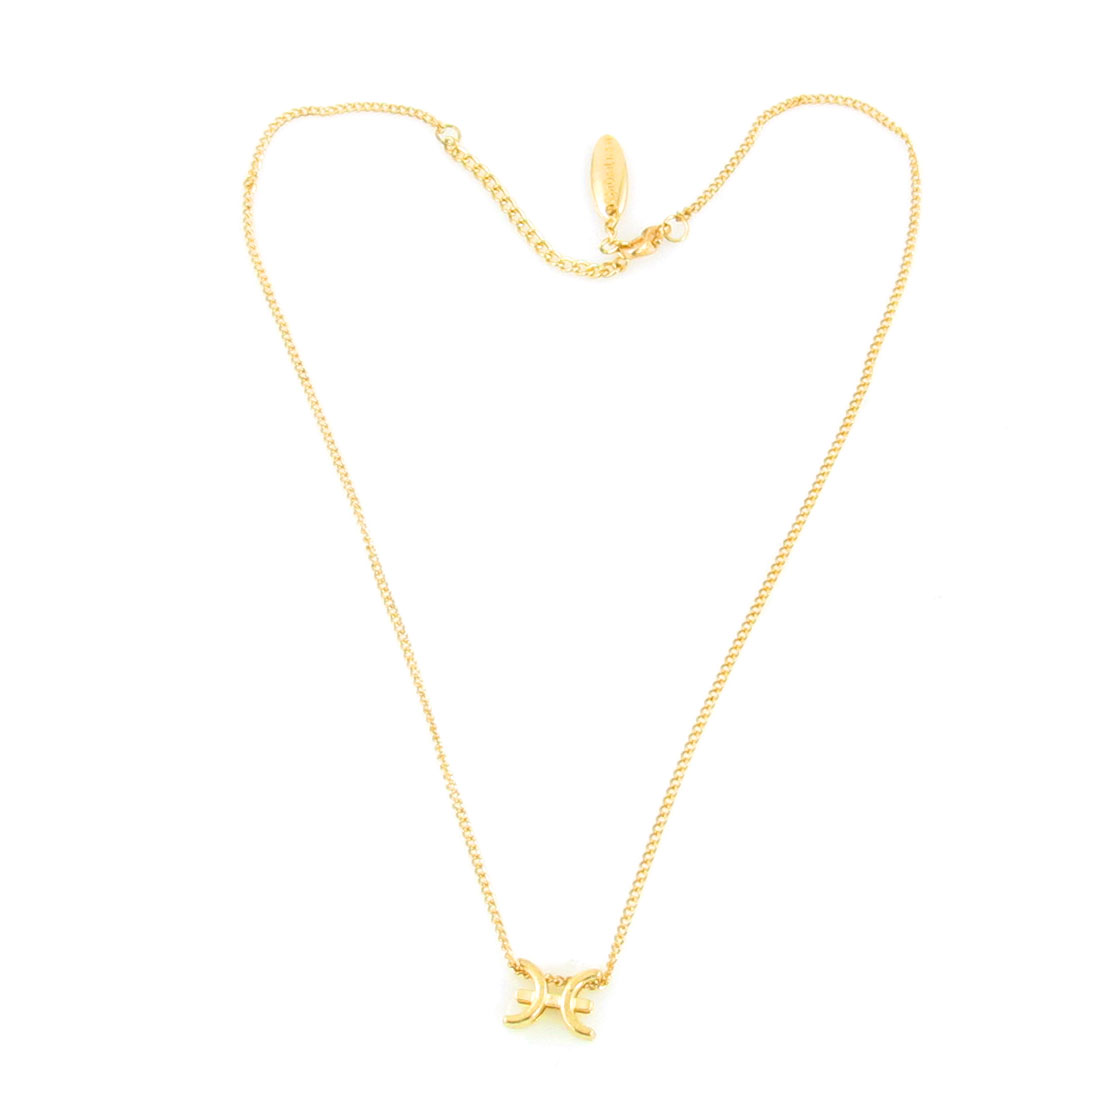 Neck Decor Cable Link Chain Pisces Zodiac Necklace Jewelry Gold Tone